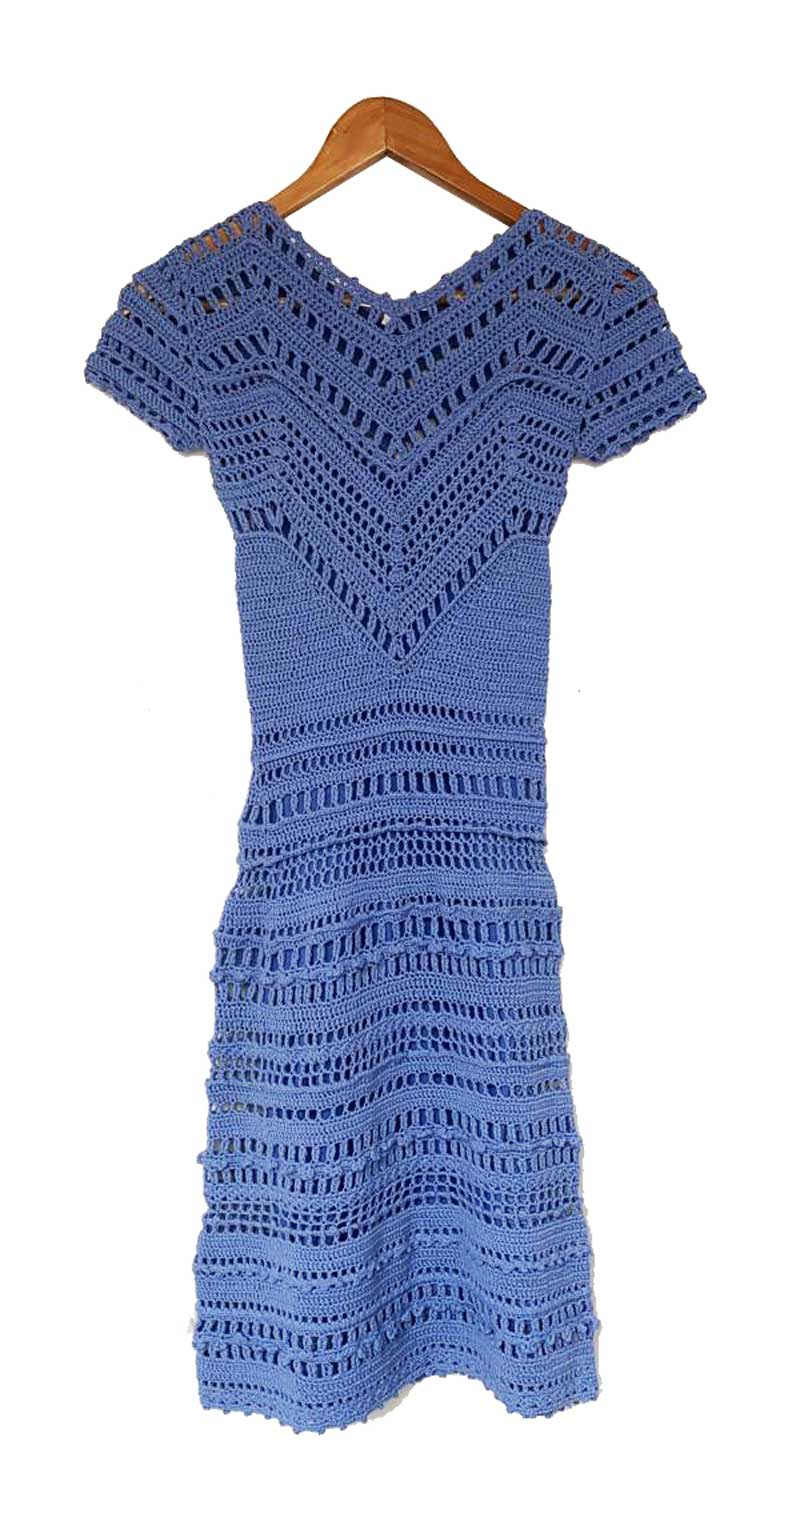 VESTIDO HAND CRAFTED ONLY CROCHE AZUL TAM P